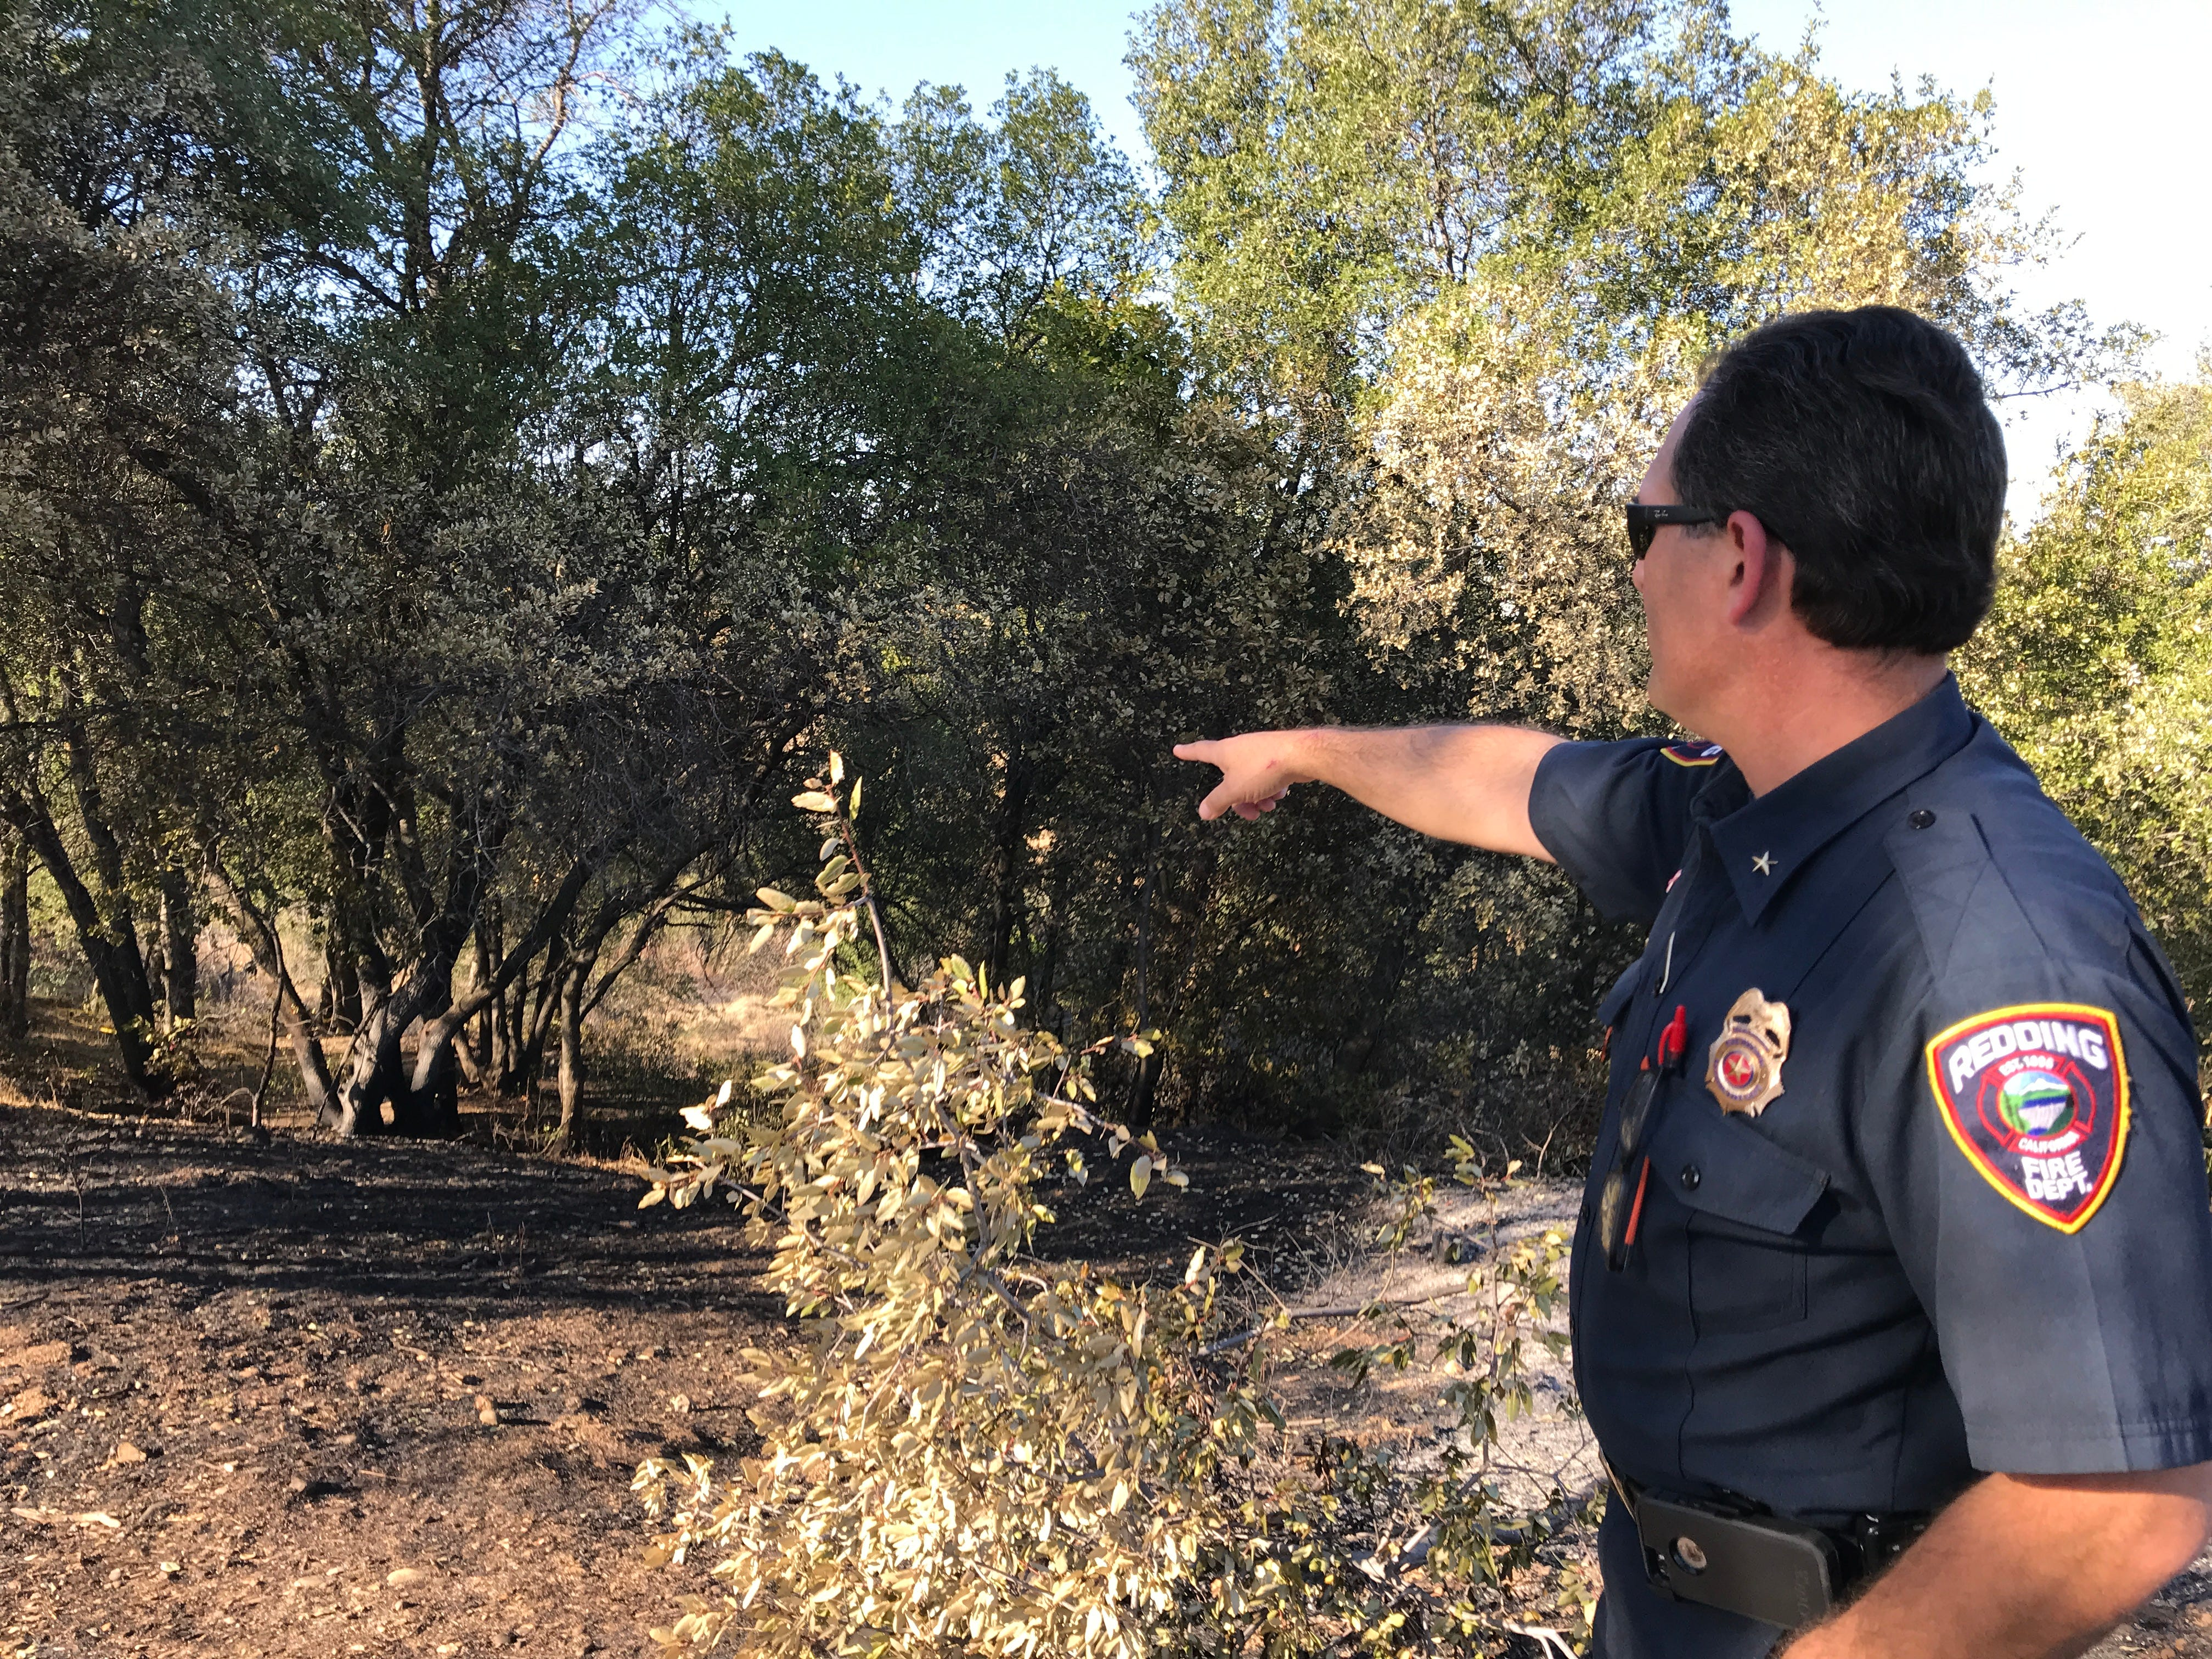 Redding Fire Marshal Craig Wittner points to the area where the Oct. 14, 2018 Masonic Fire burned in the Sulphur Creek Canyon in north Redding. The human-caused fire started on private property before it crossed into city-owned property and eventually burned a home. Wittner said a brush-clearing project two years ago saved more homes from burning.